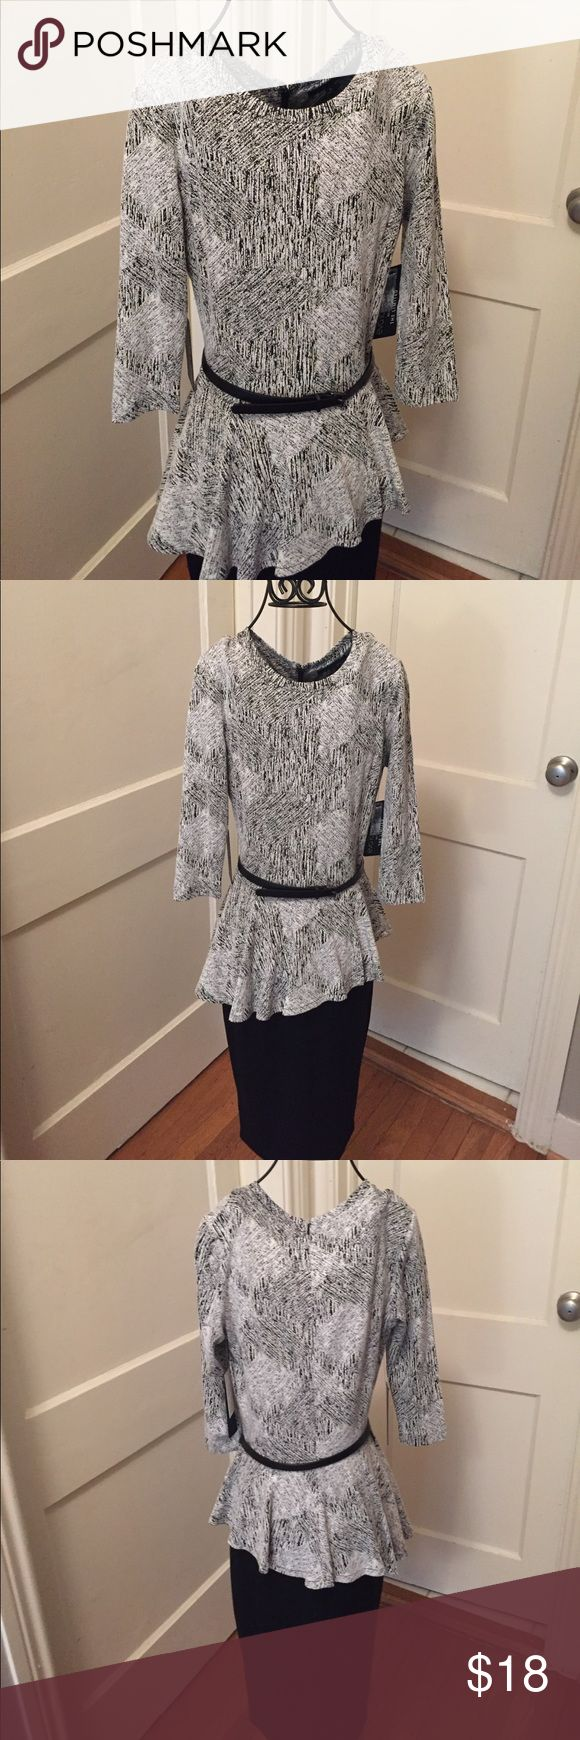 Eva Longoria peplum work dress. Size S. New Eva Longoria peplum work dress. Size S. Fits a size 4. New and never worn. Hits below the knee. Purchased from The Limited. Reg. $139 Dresses Midi